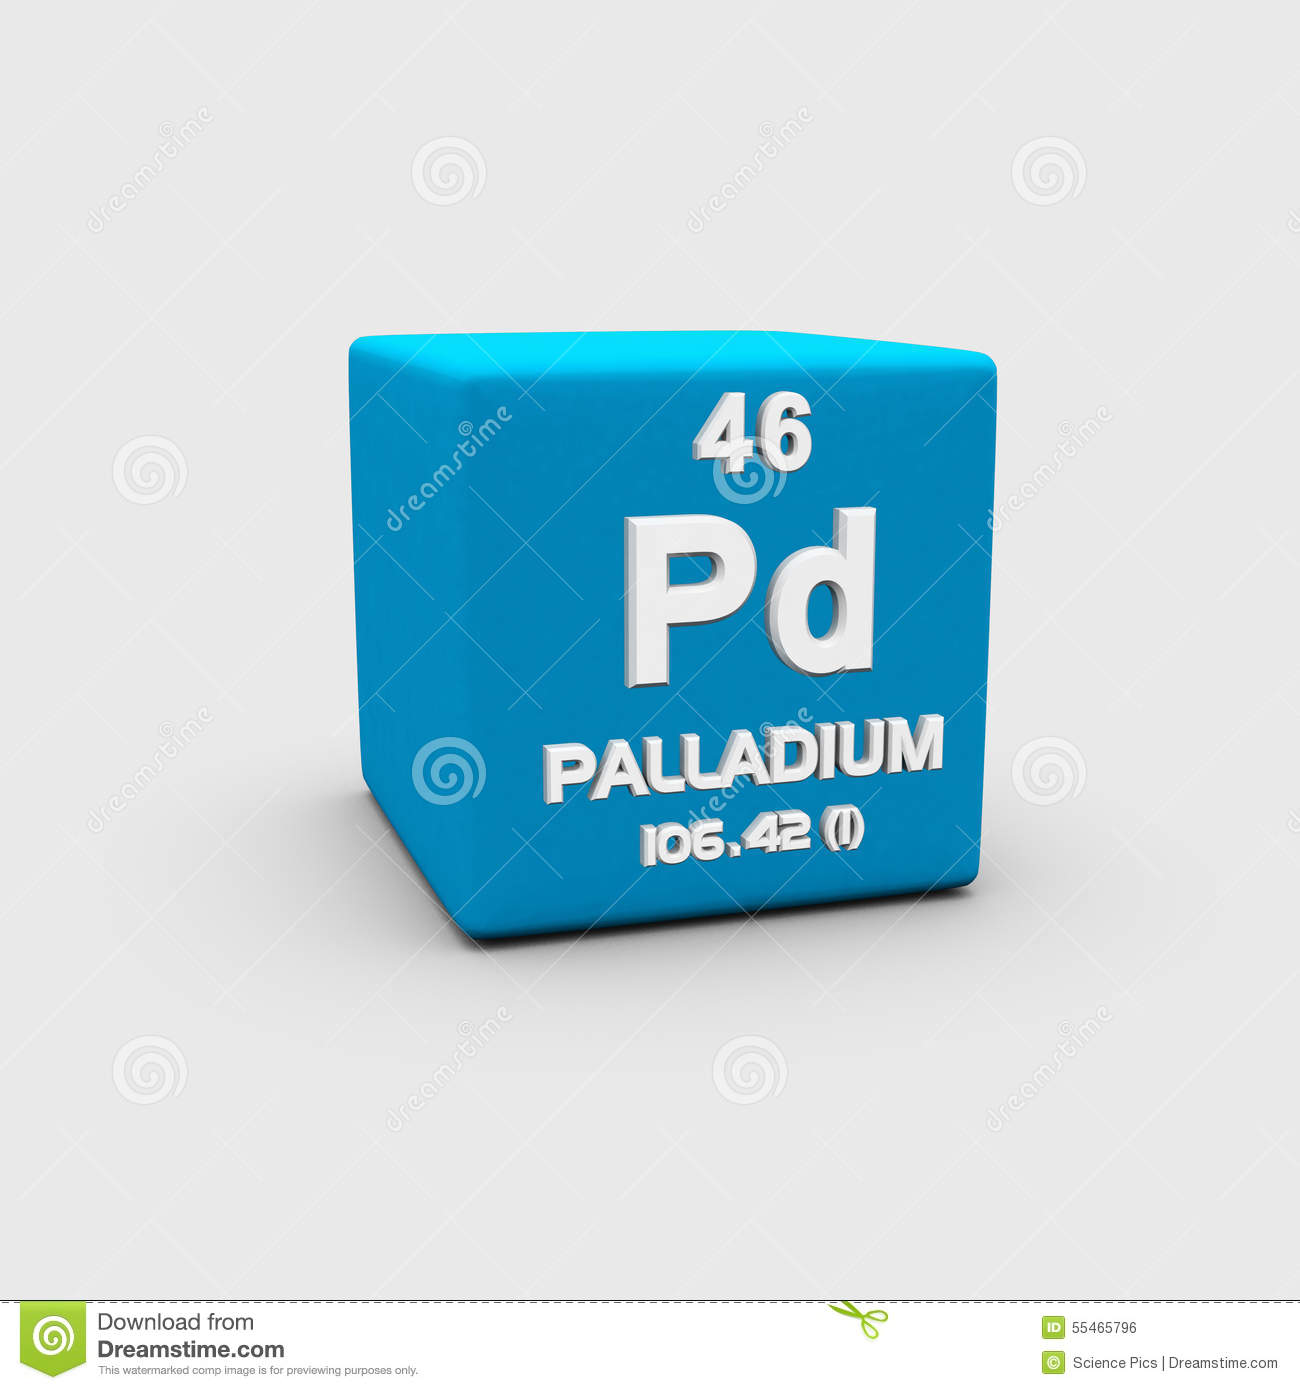 Ruthenium form periodic table of elements stock illustration atomic number palladium royalty free stock image gamestrikefo Choice Image